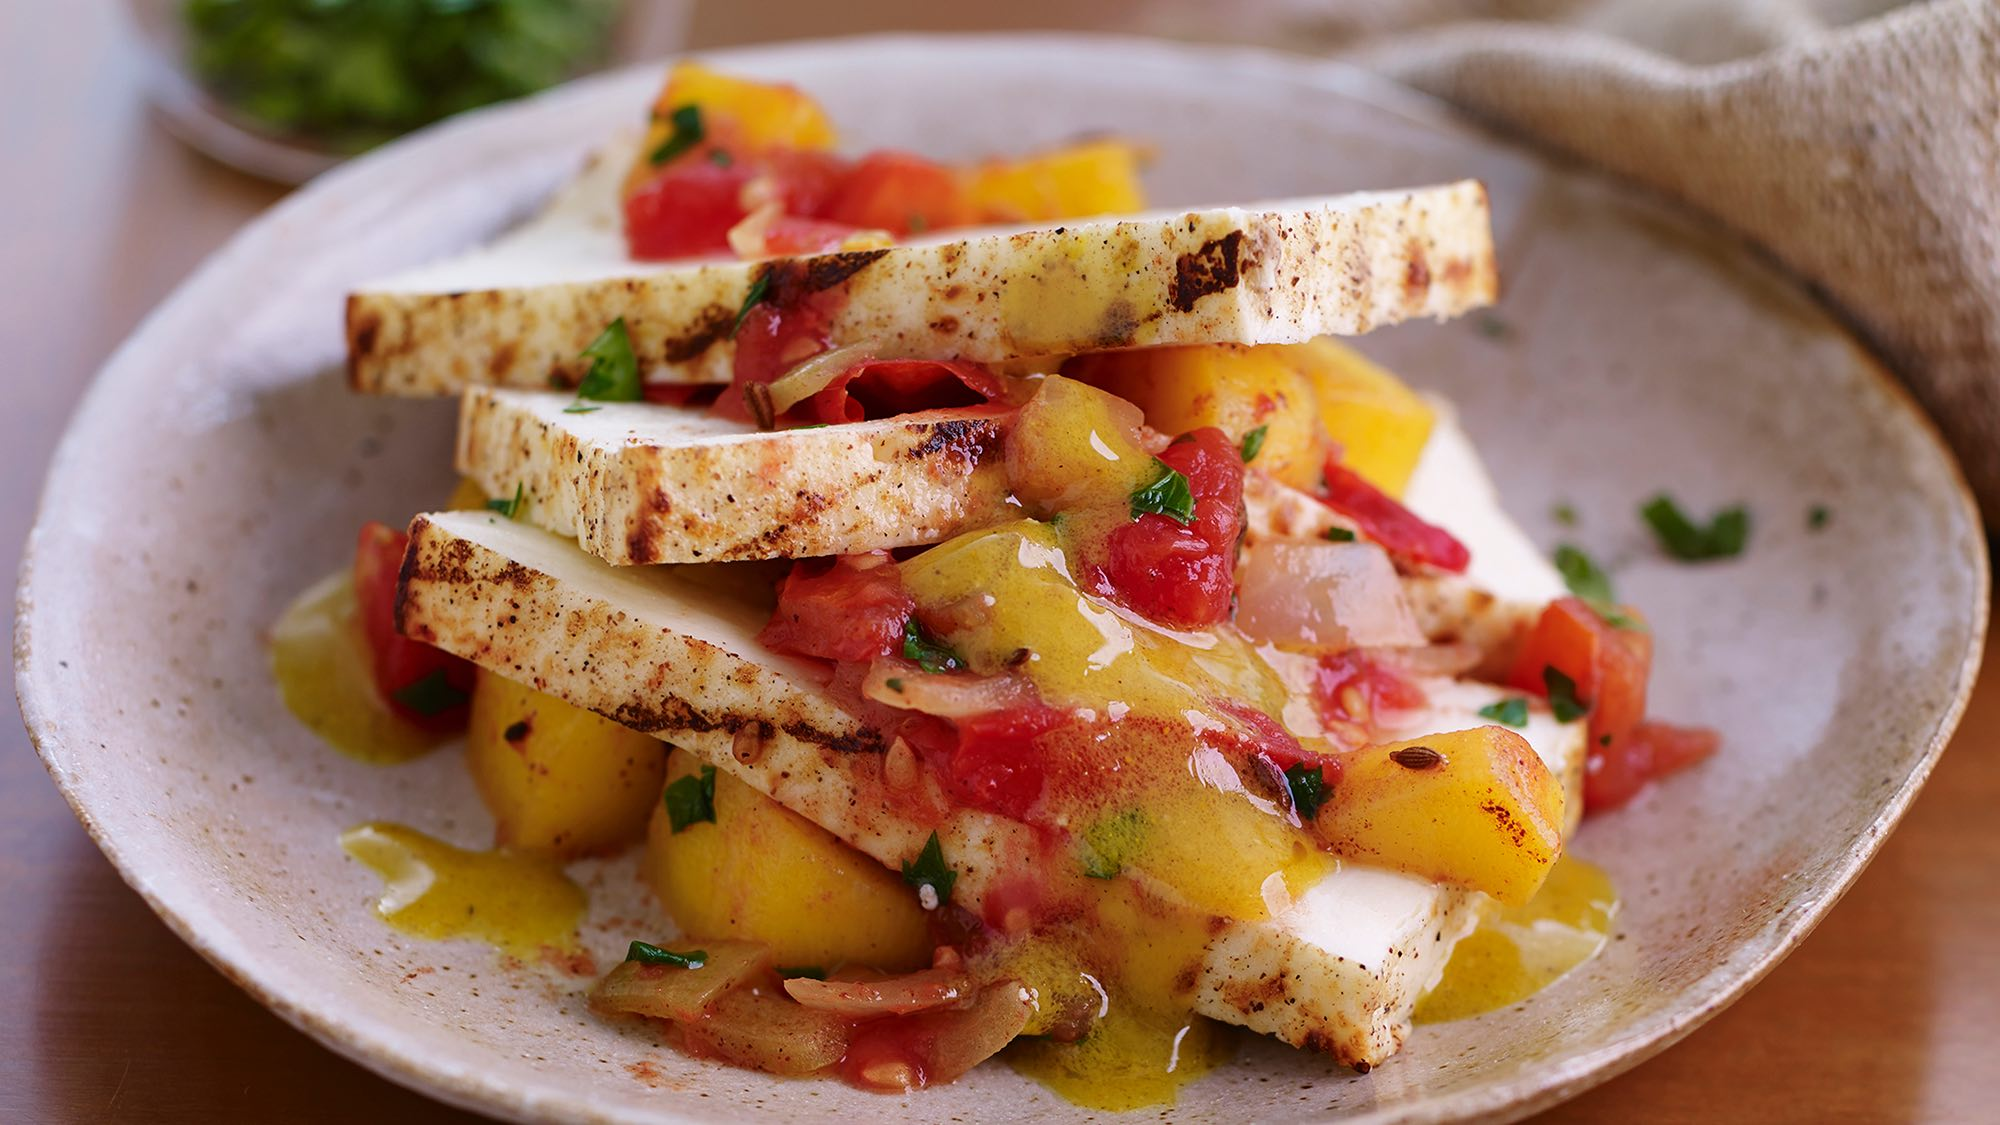 grilled-paneer-cheese-with-mango-tomato-chutney-and-curry-vinaigrette.jpg